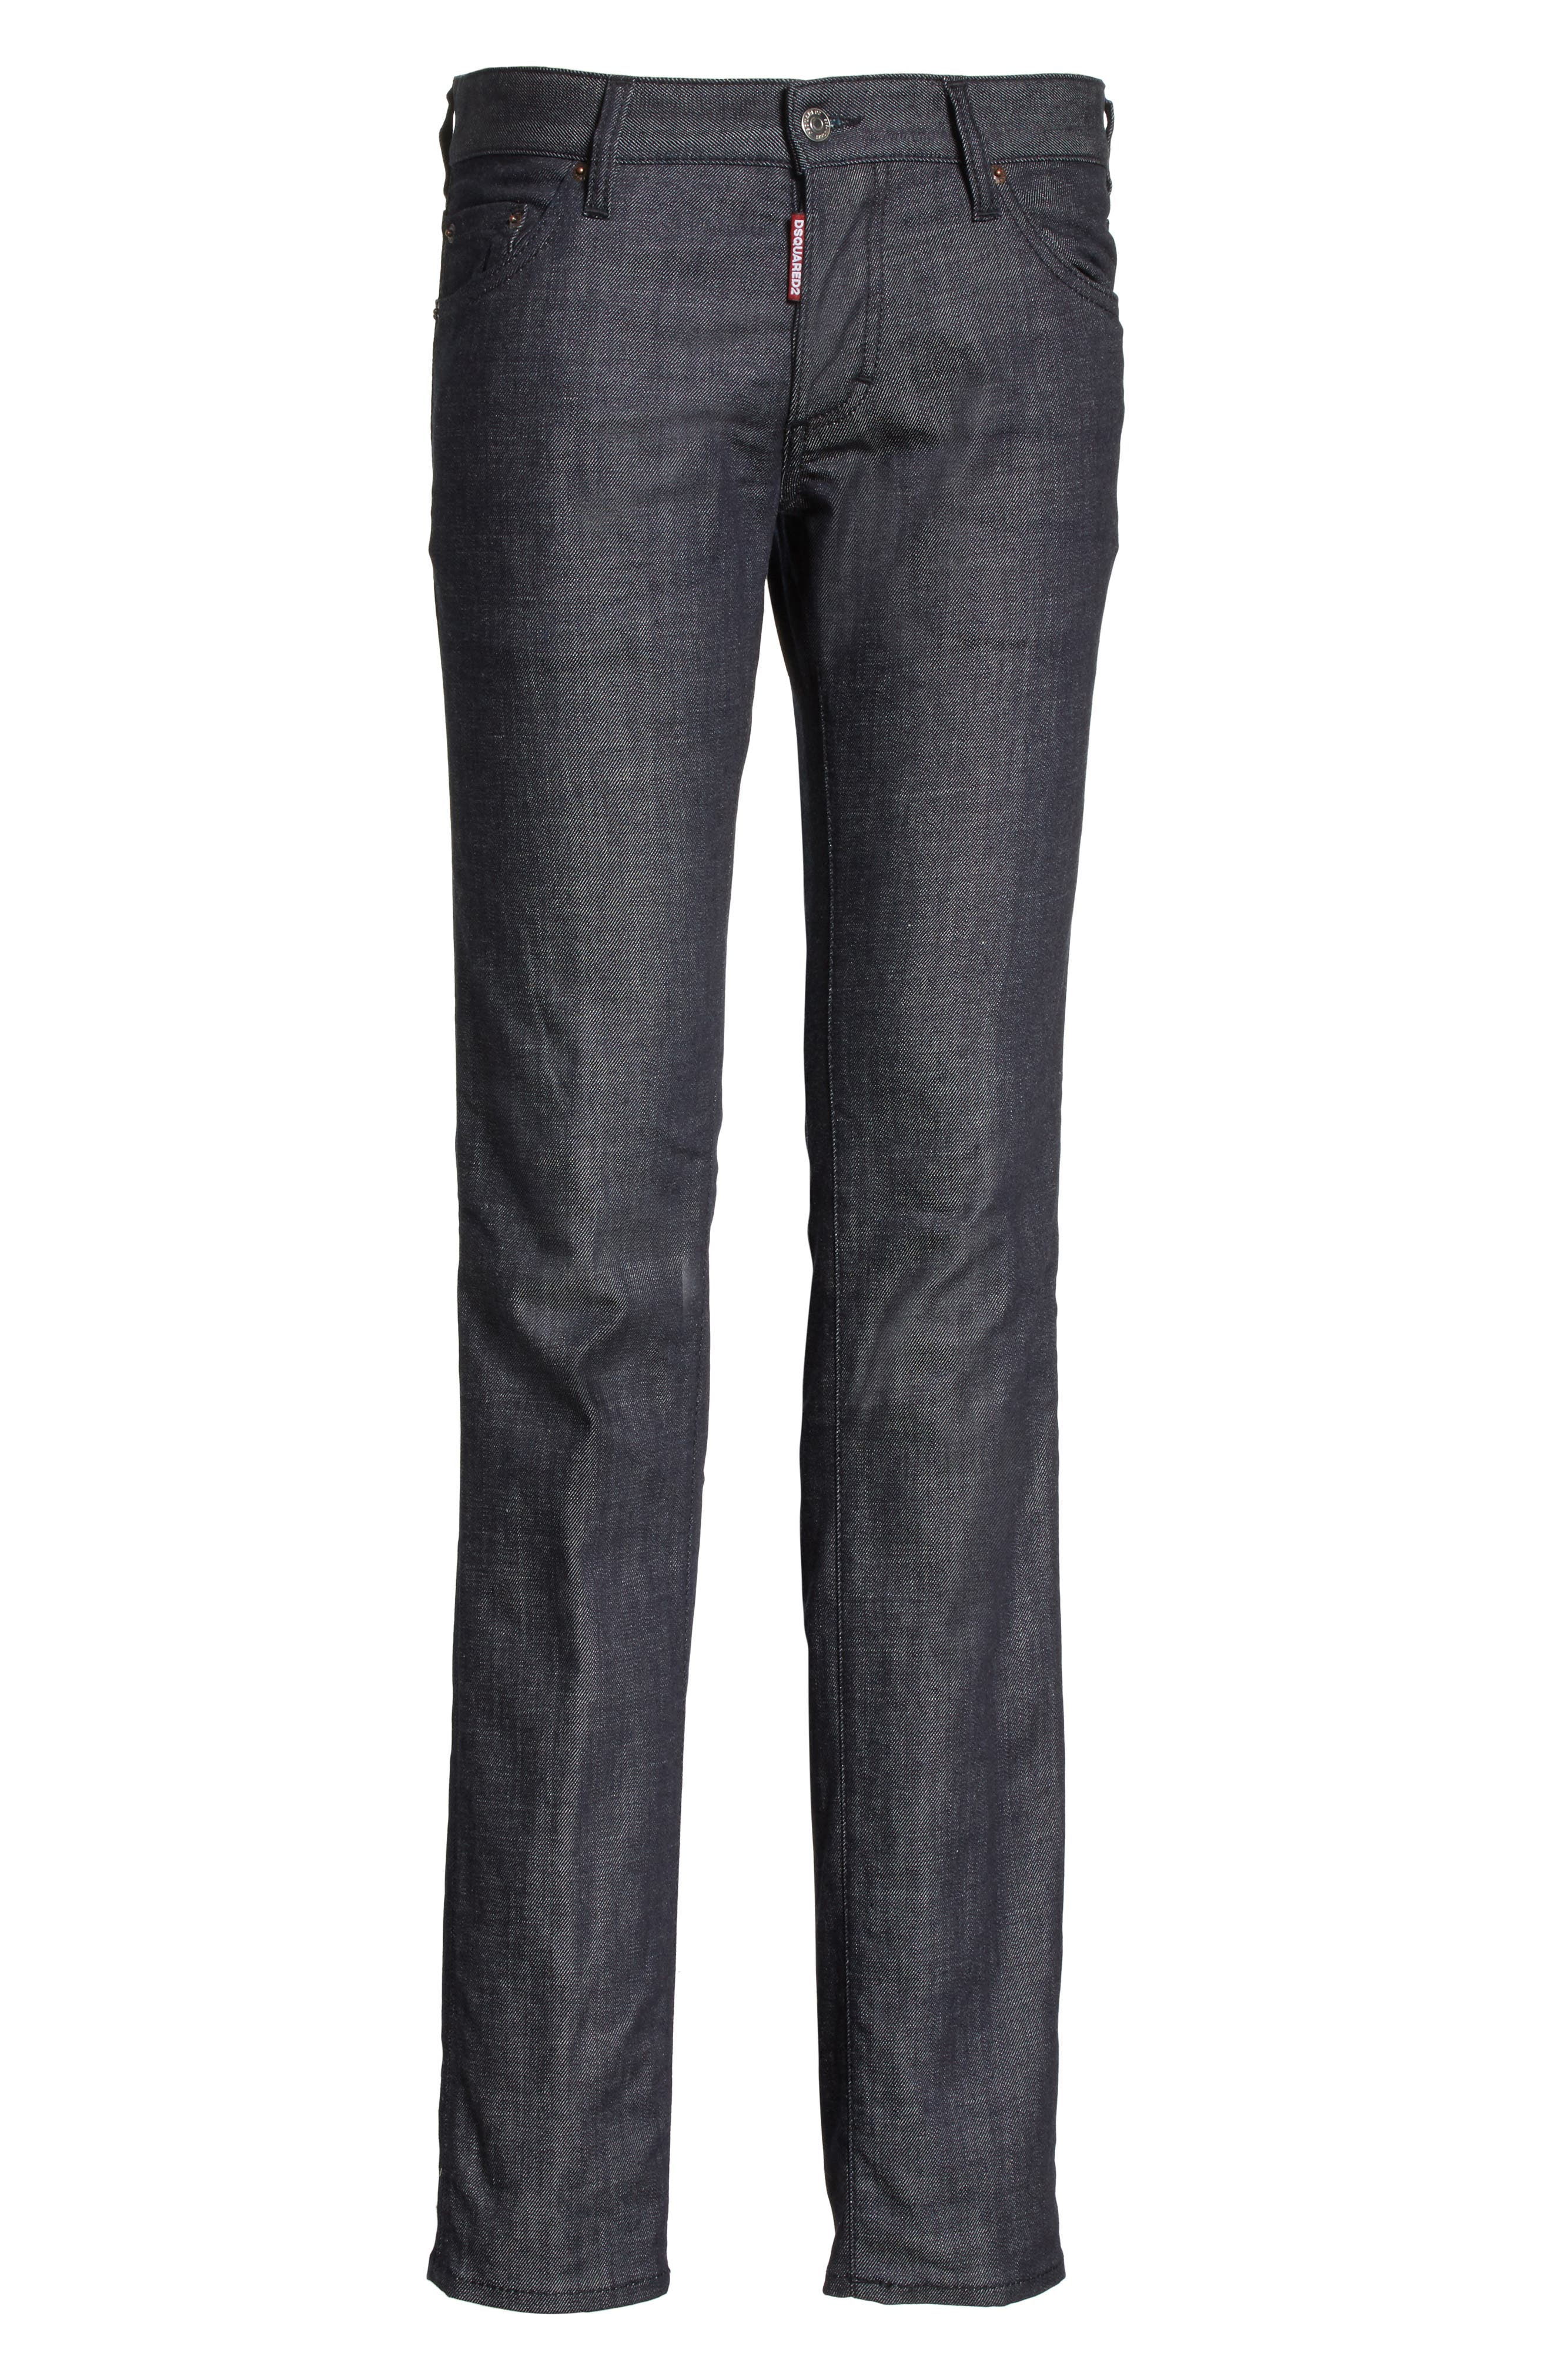 24-7Star Slim Fit Jeans,                             Alternate thumbnail 6, color,                             NAVY/BLUE